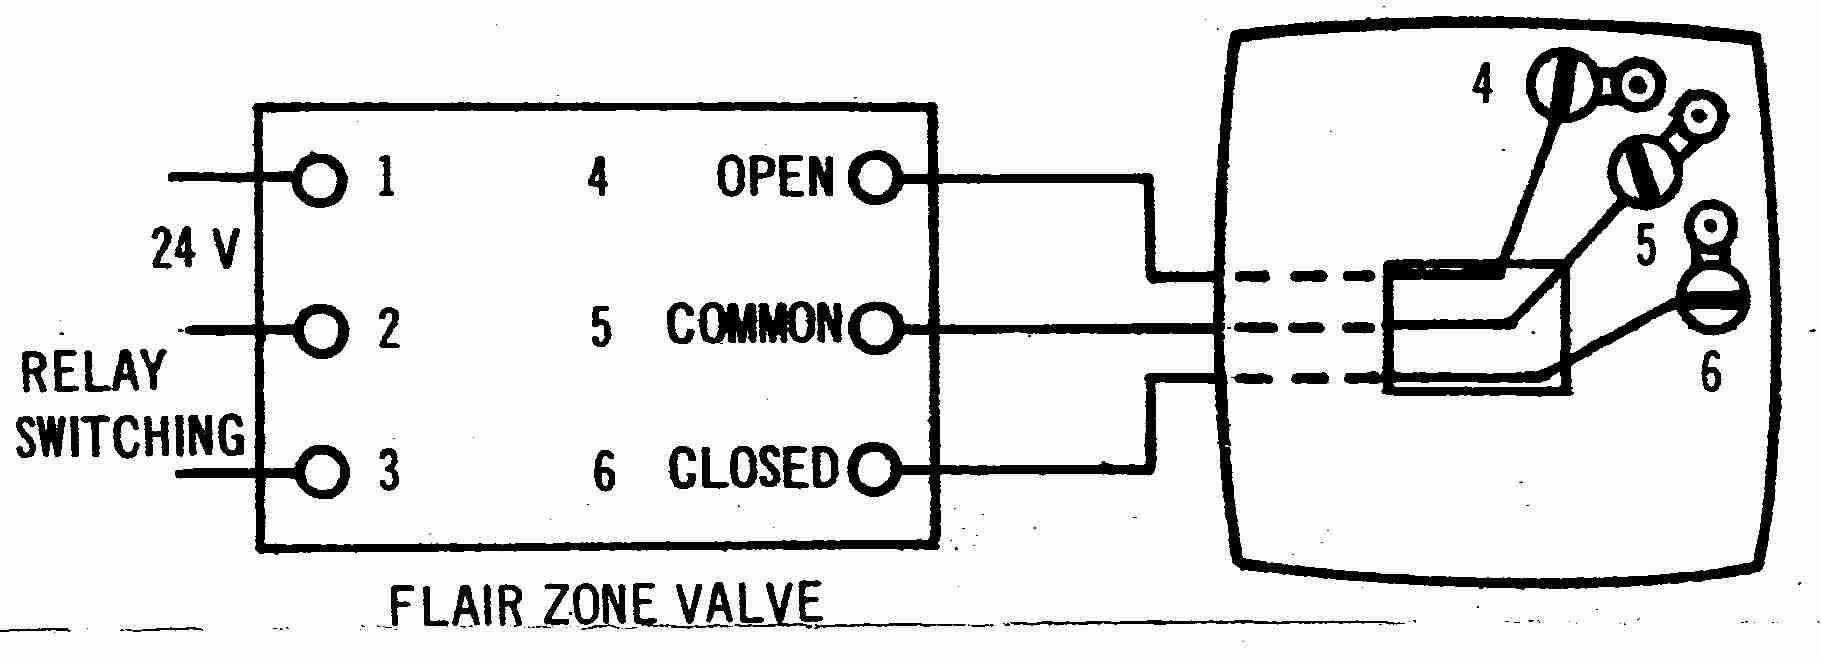 double throw switch wiring diagram with Zone Valve Wiring on 520726 likewise Double Pole Thermostat Electric Baseboard 130437 as well ArduinoPower as well Hvac Heating And Cooling Thermostats also Toggle Switch Wiring.